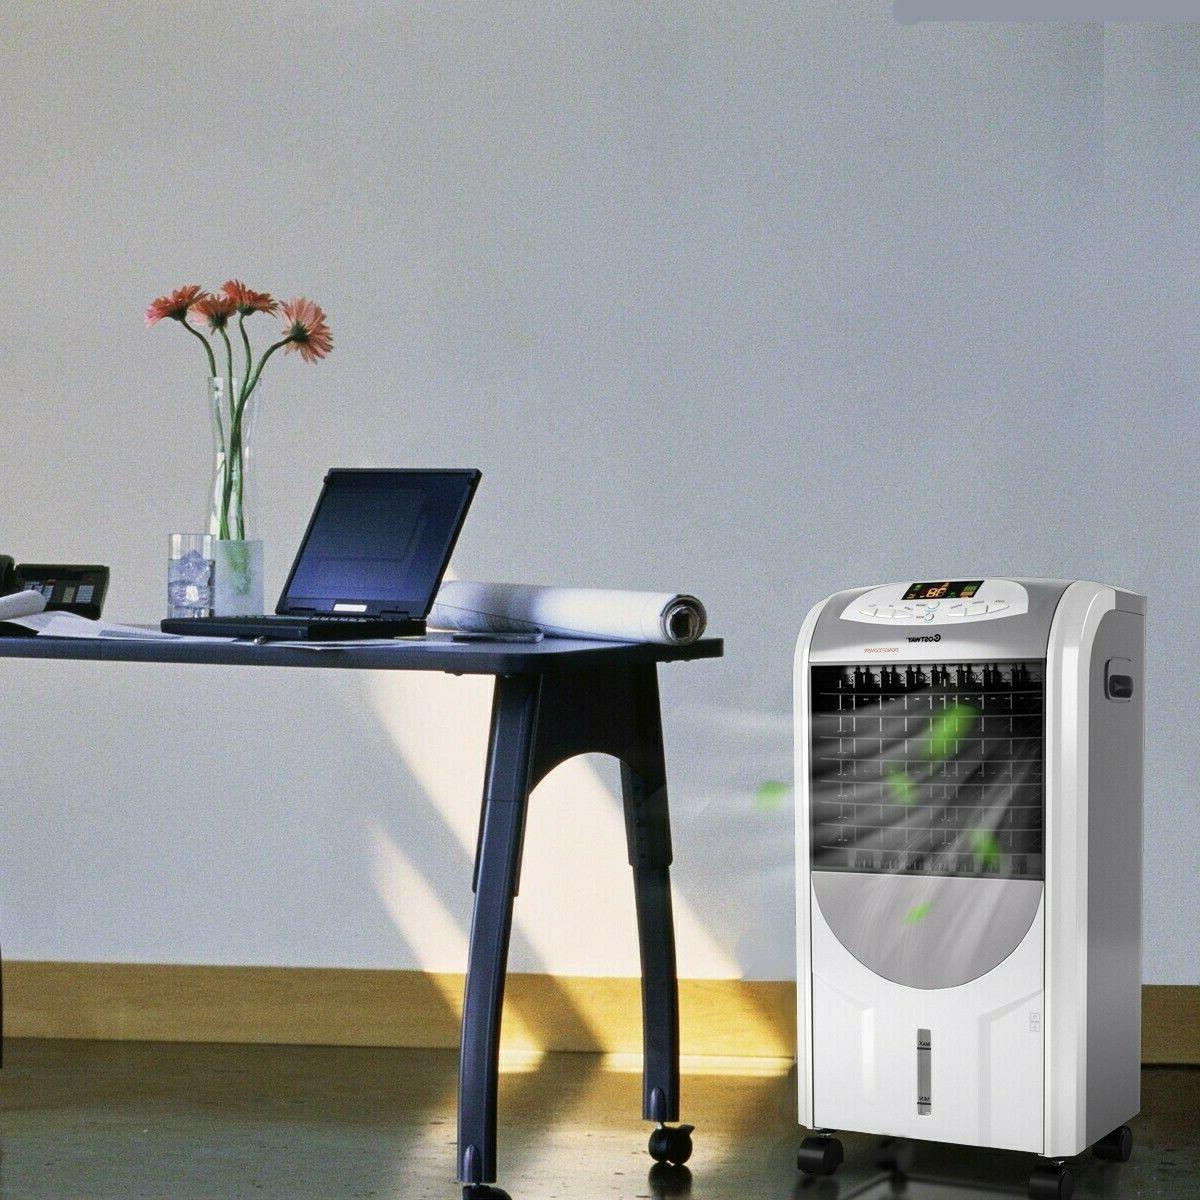 5in1 Air Conditioner Cooler Heater